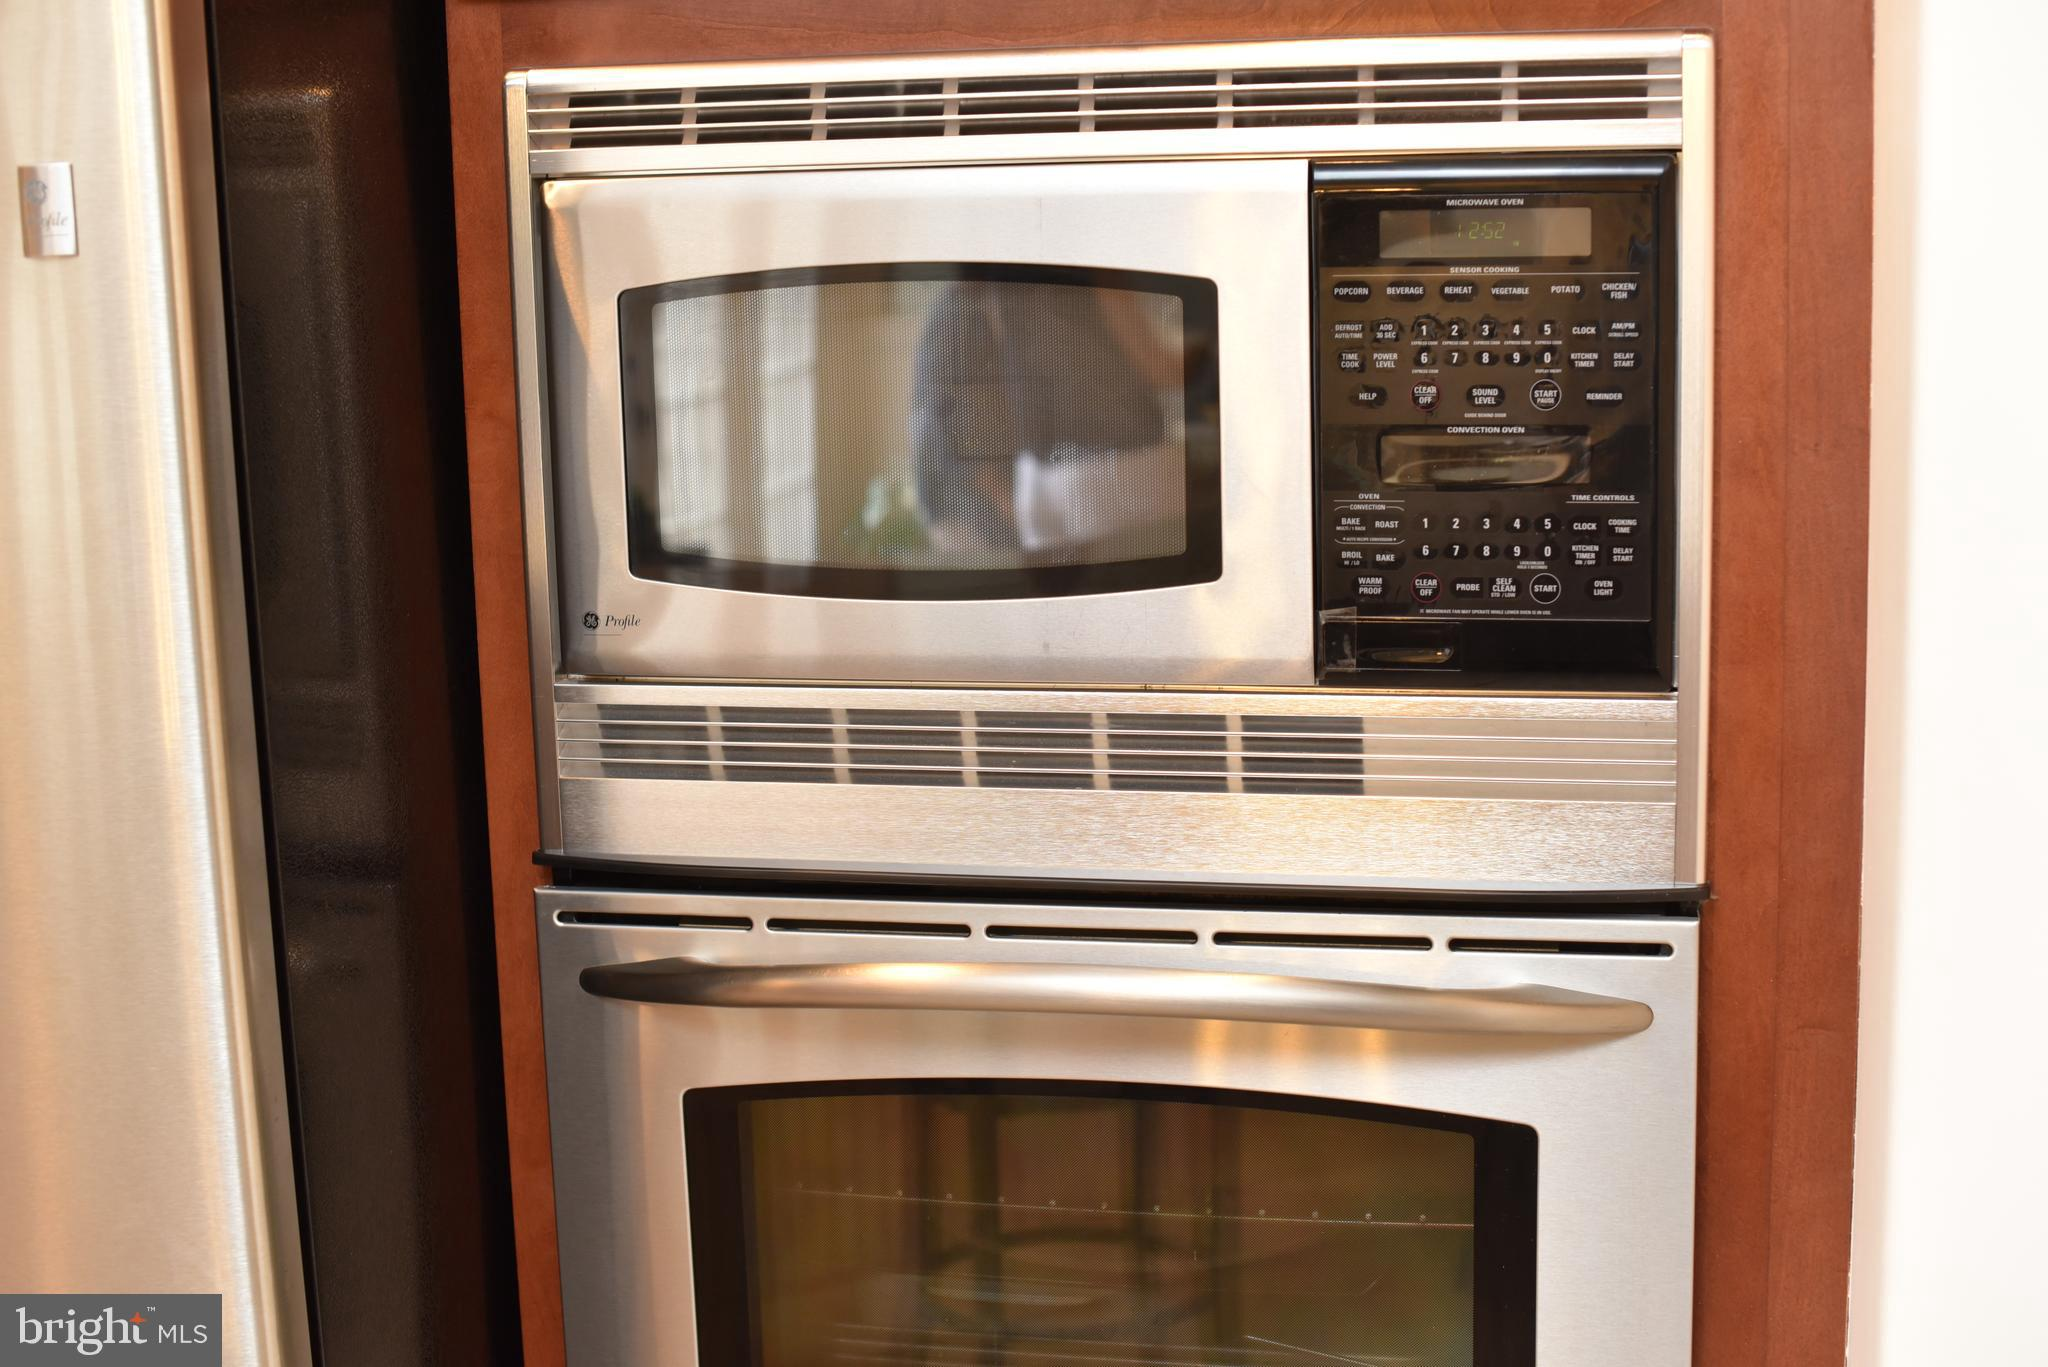 Stainless steel, stacked oven and microwave